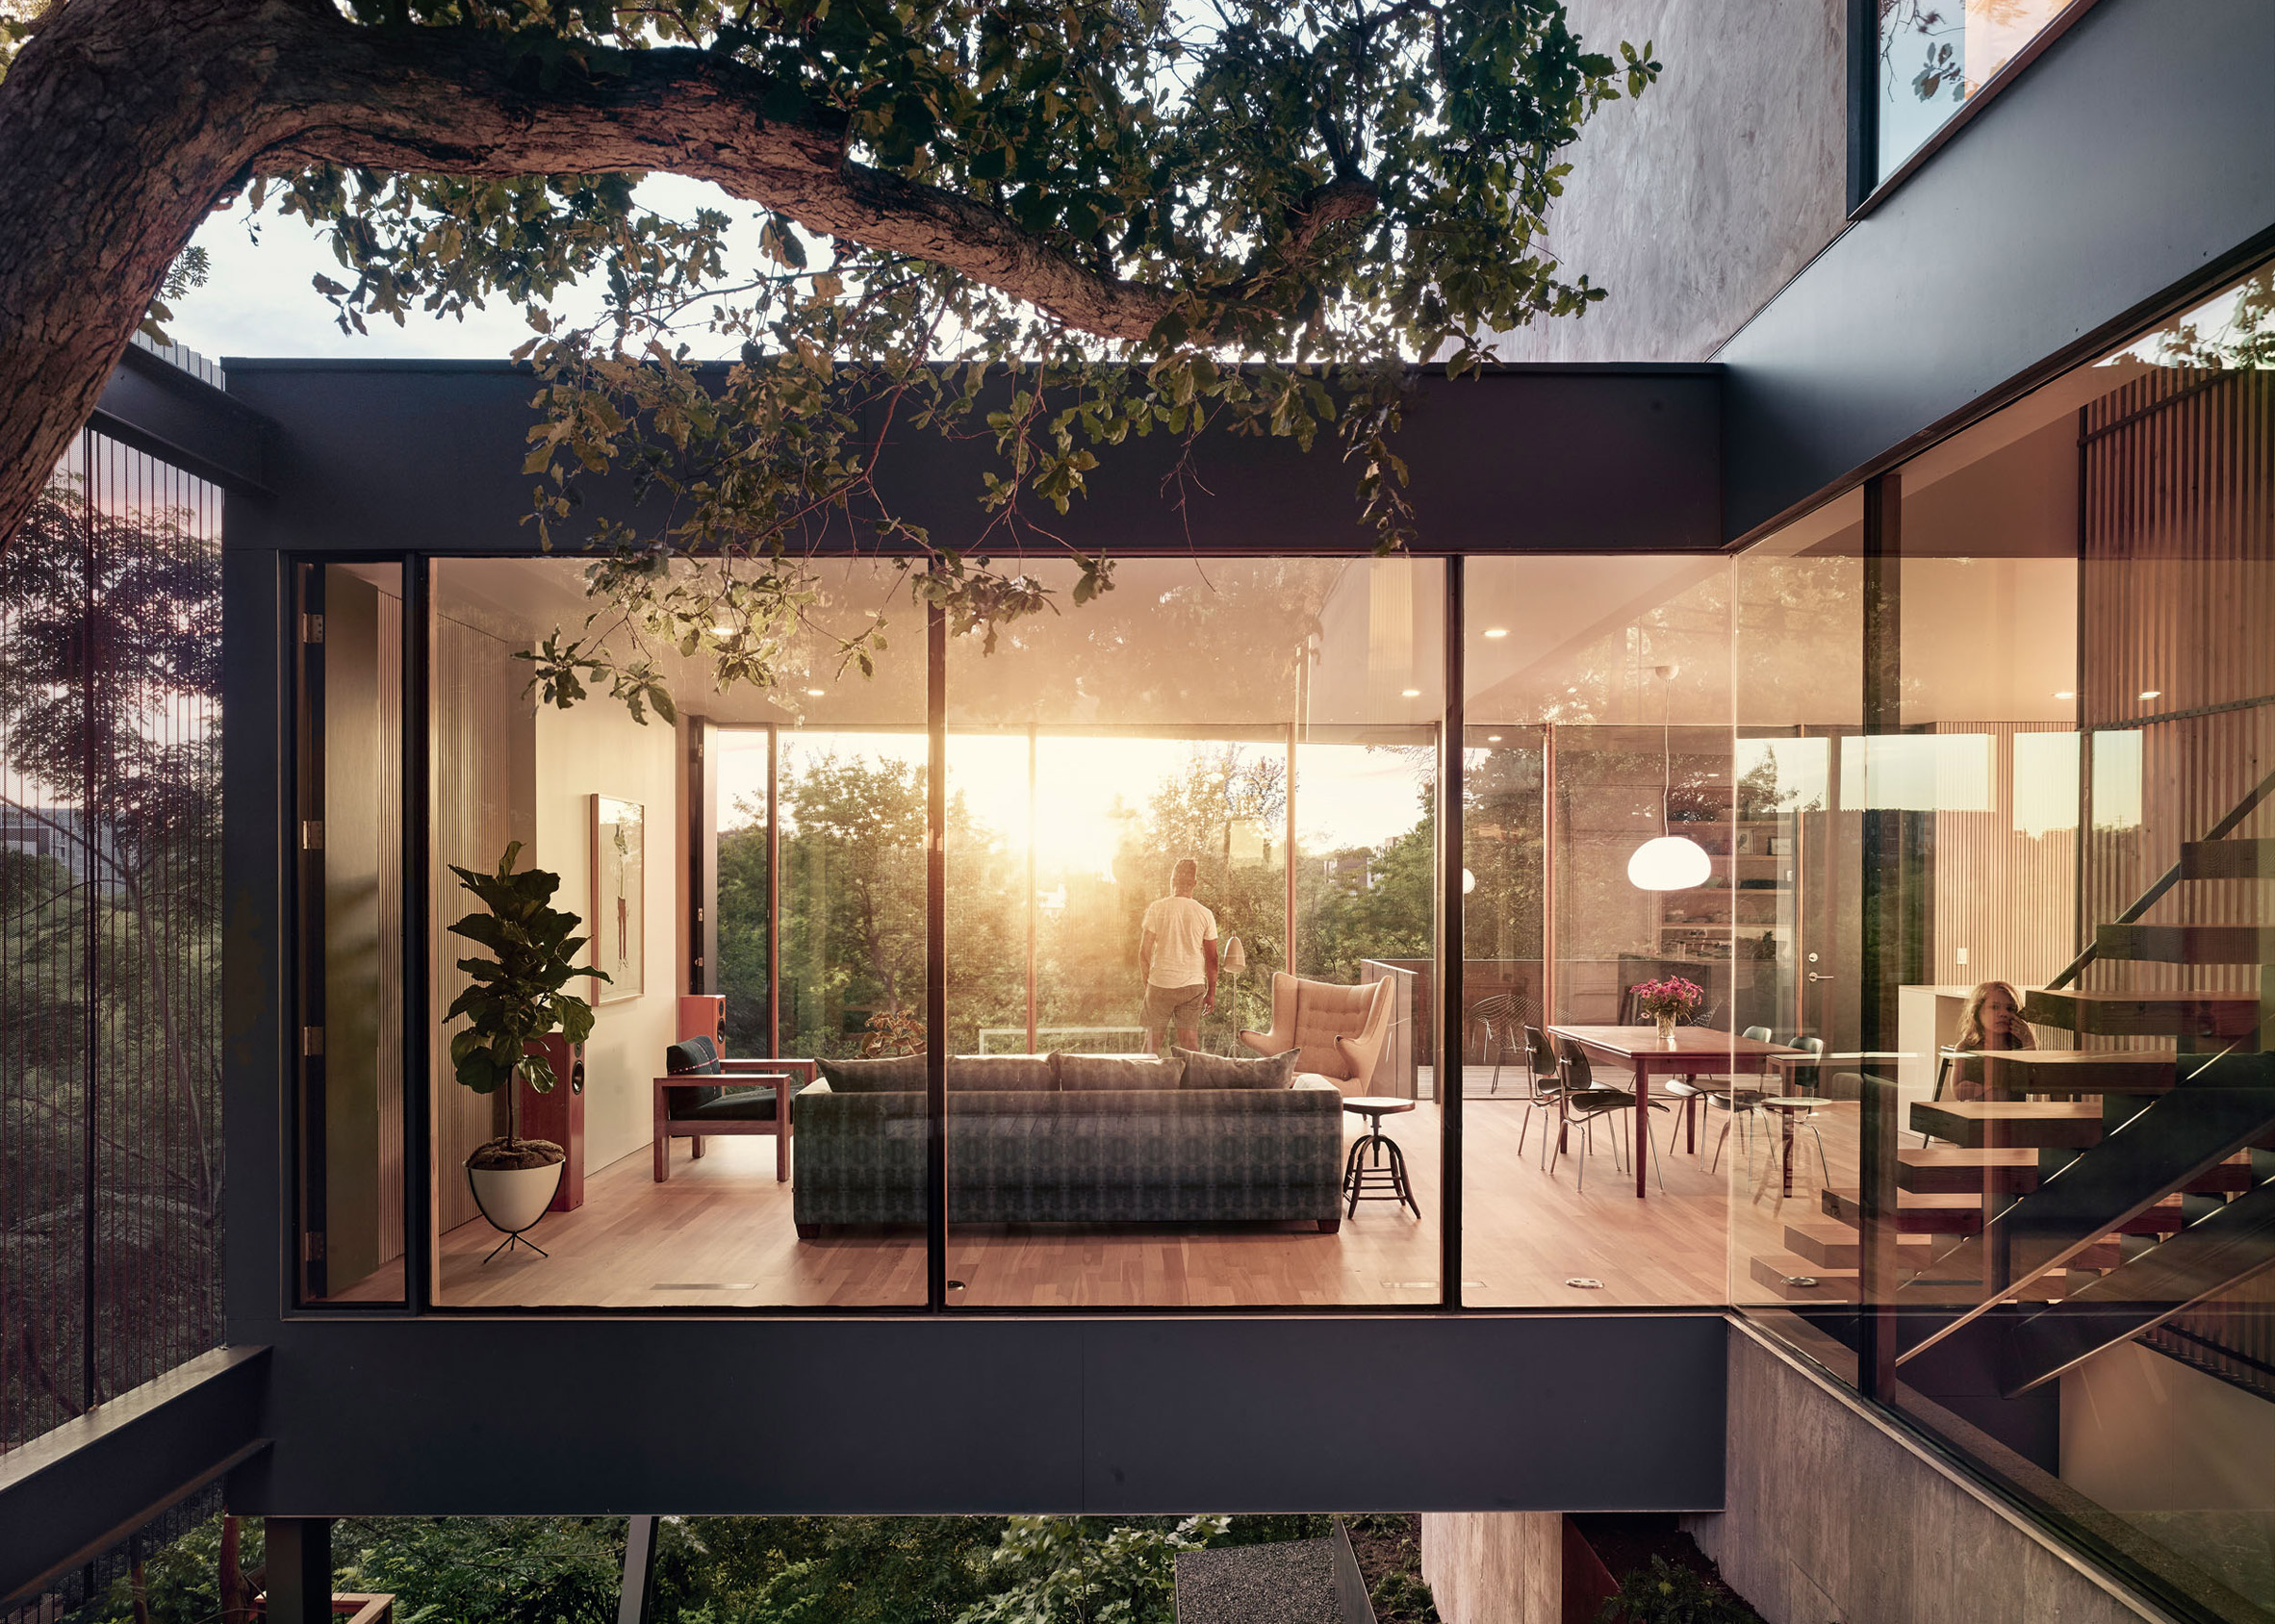 South 5th Residence, Austin, Texas by Alterstudio Architecture